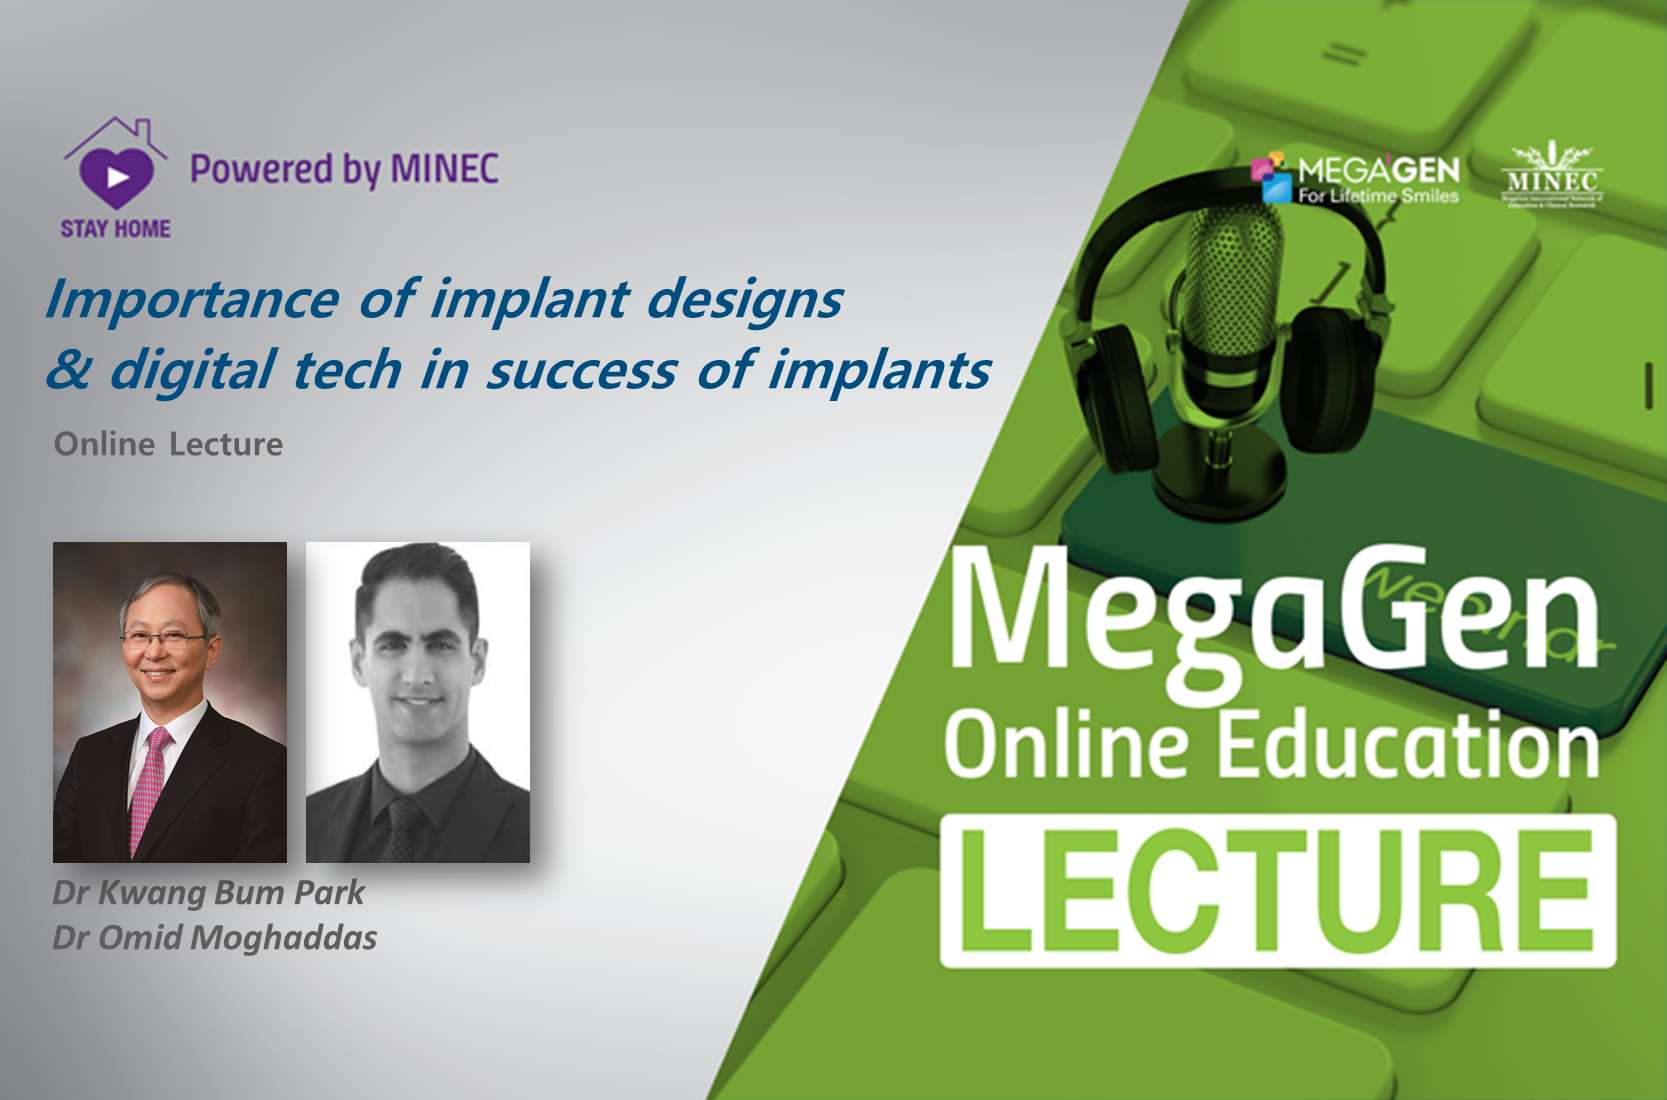 Importance of implant designs & digital tech in success of implants